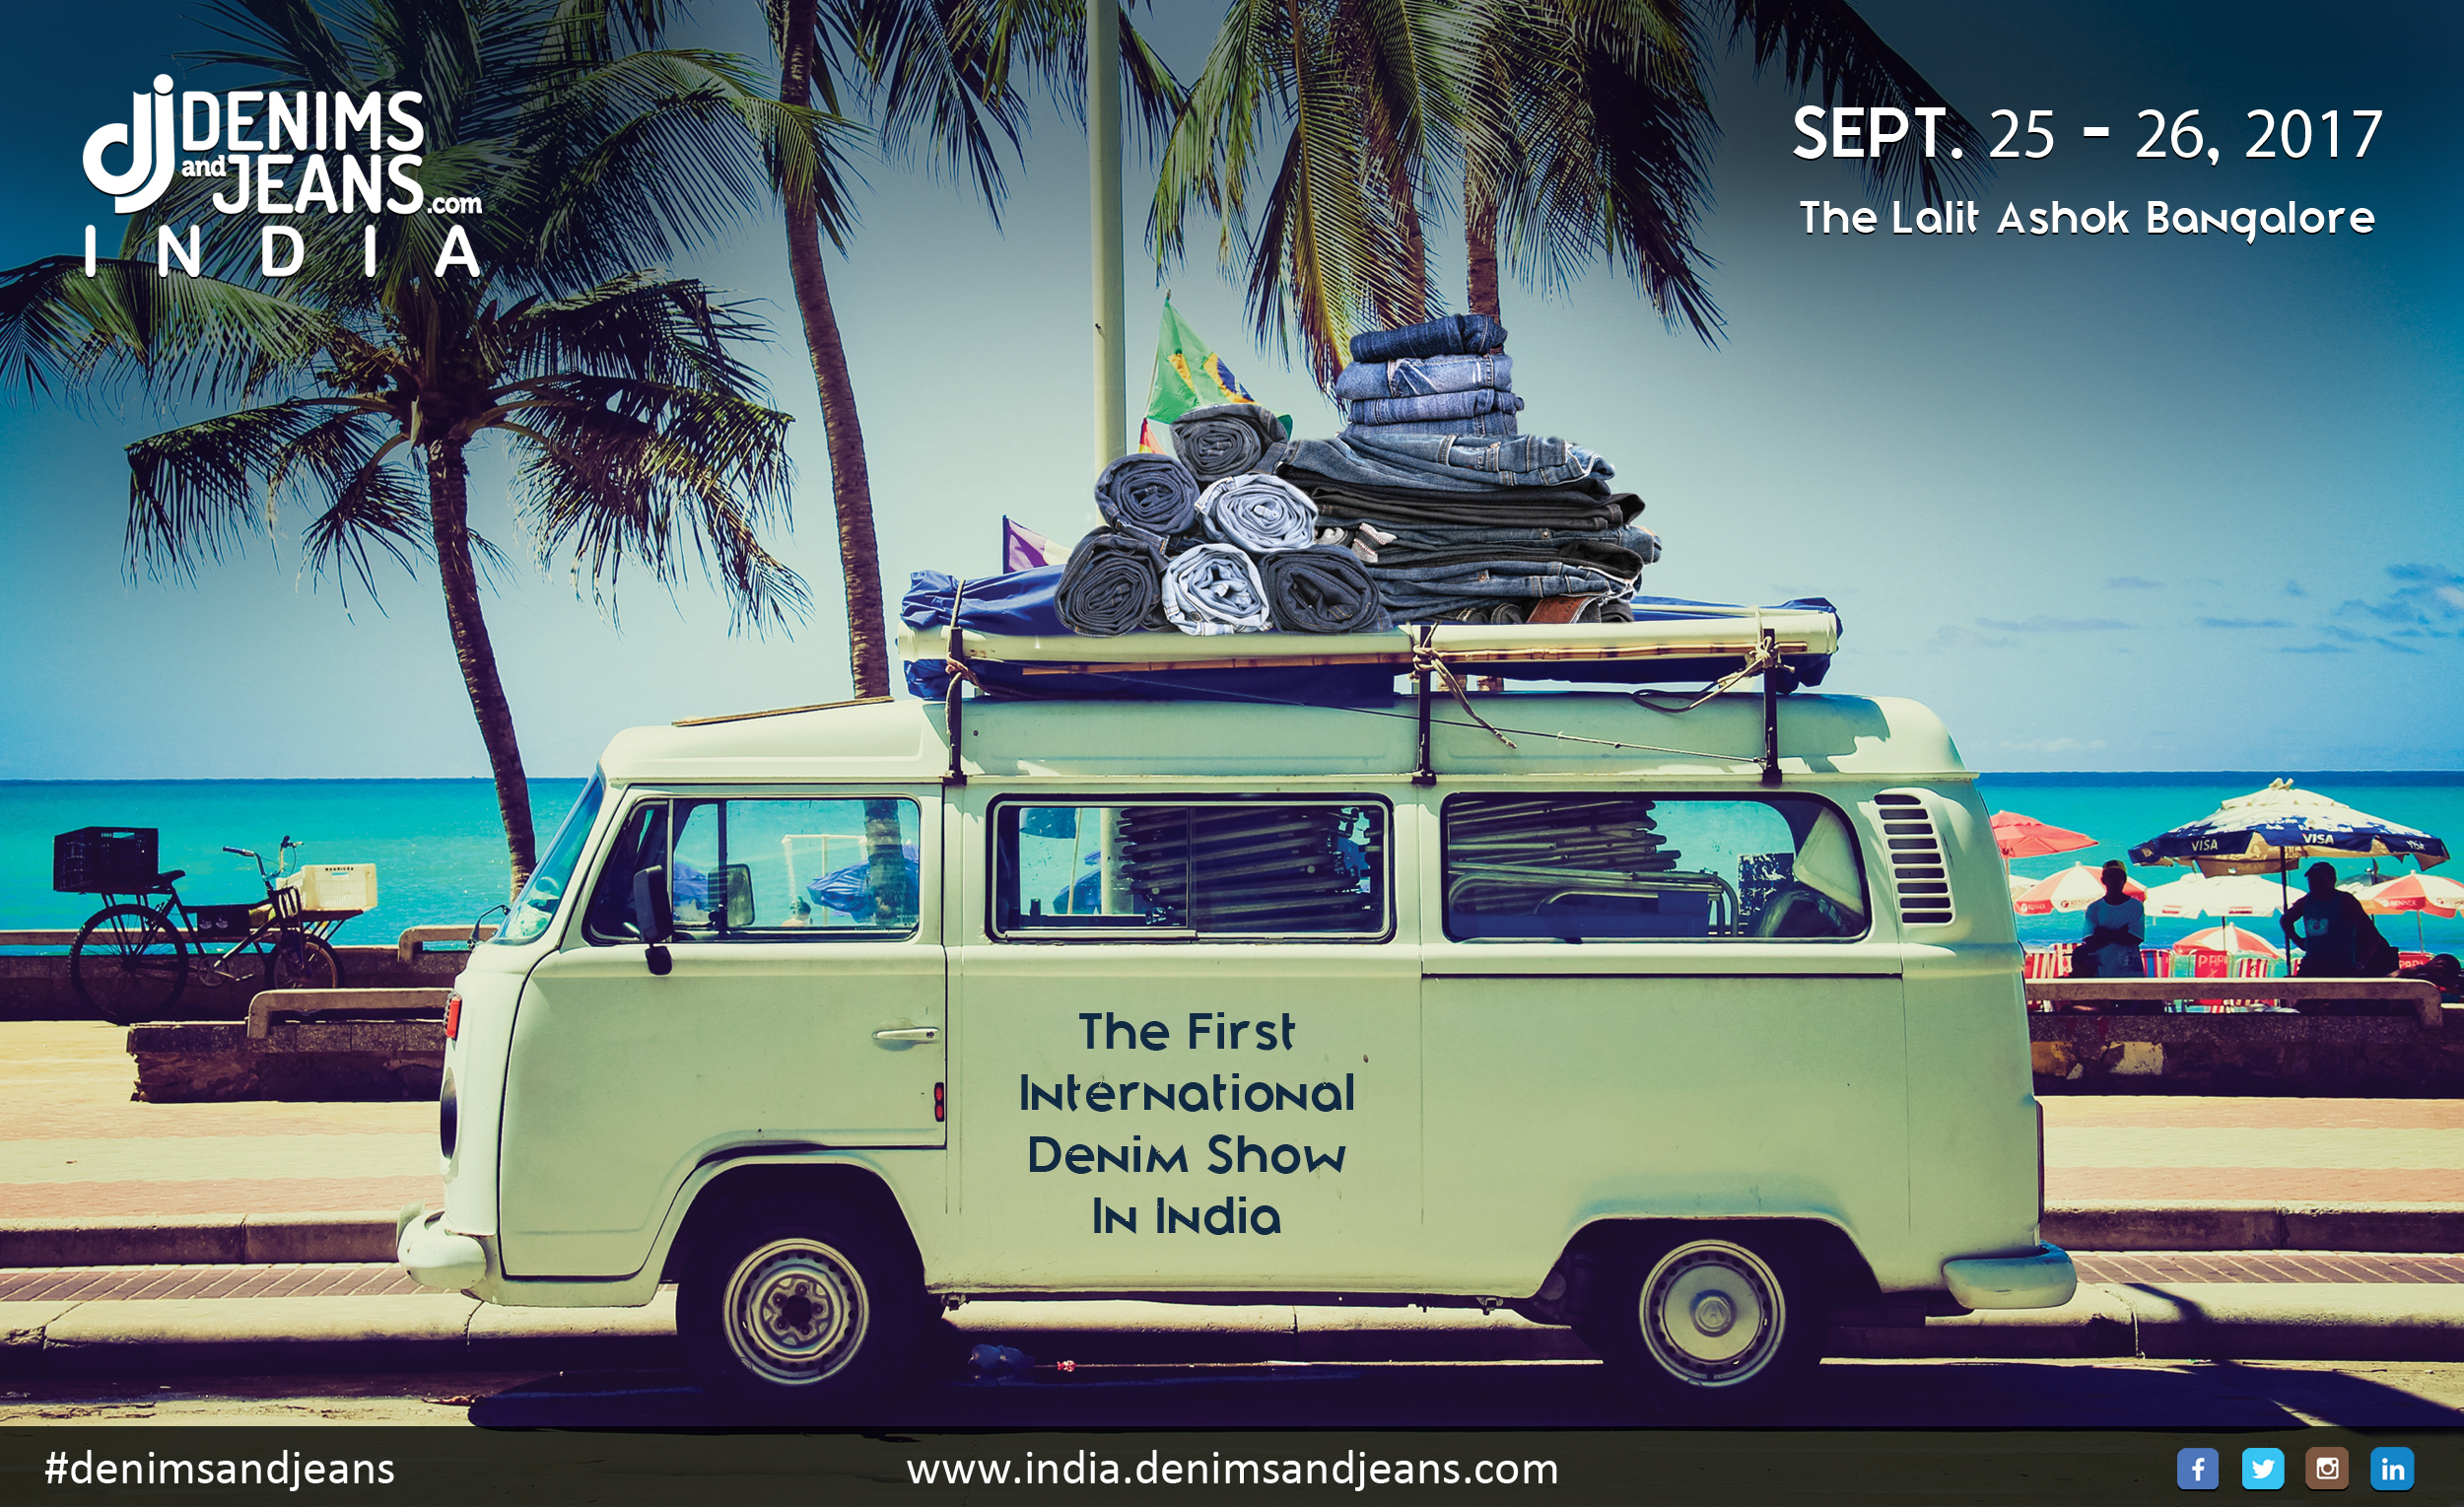 Bengaluru Hosts First Denimsandjeans India Show !